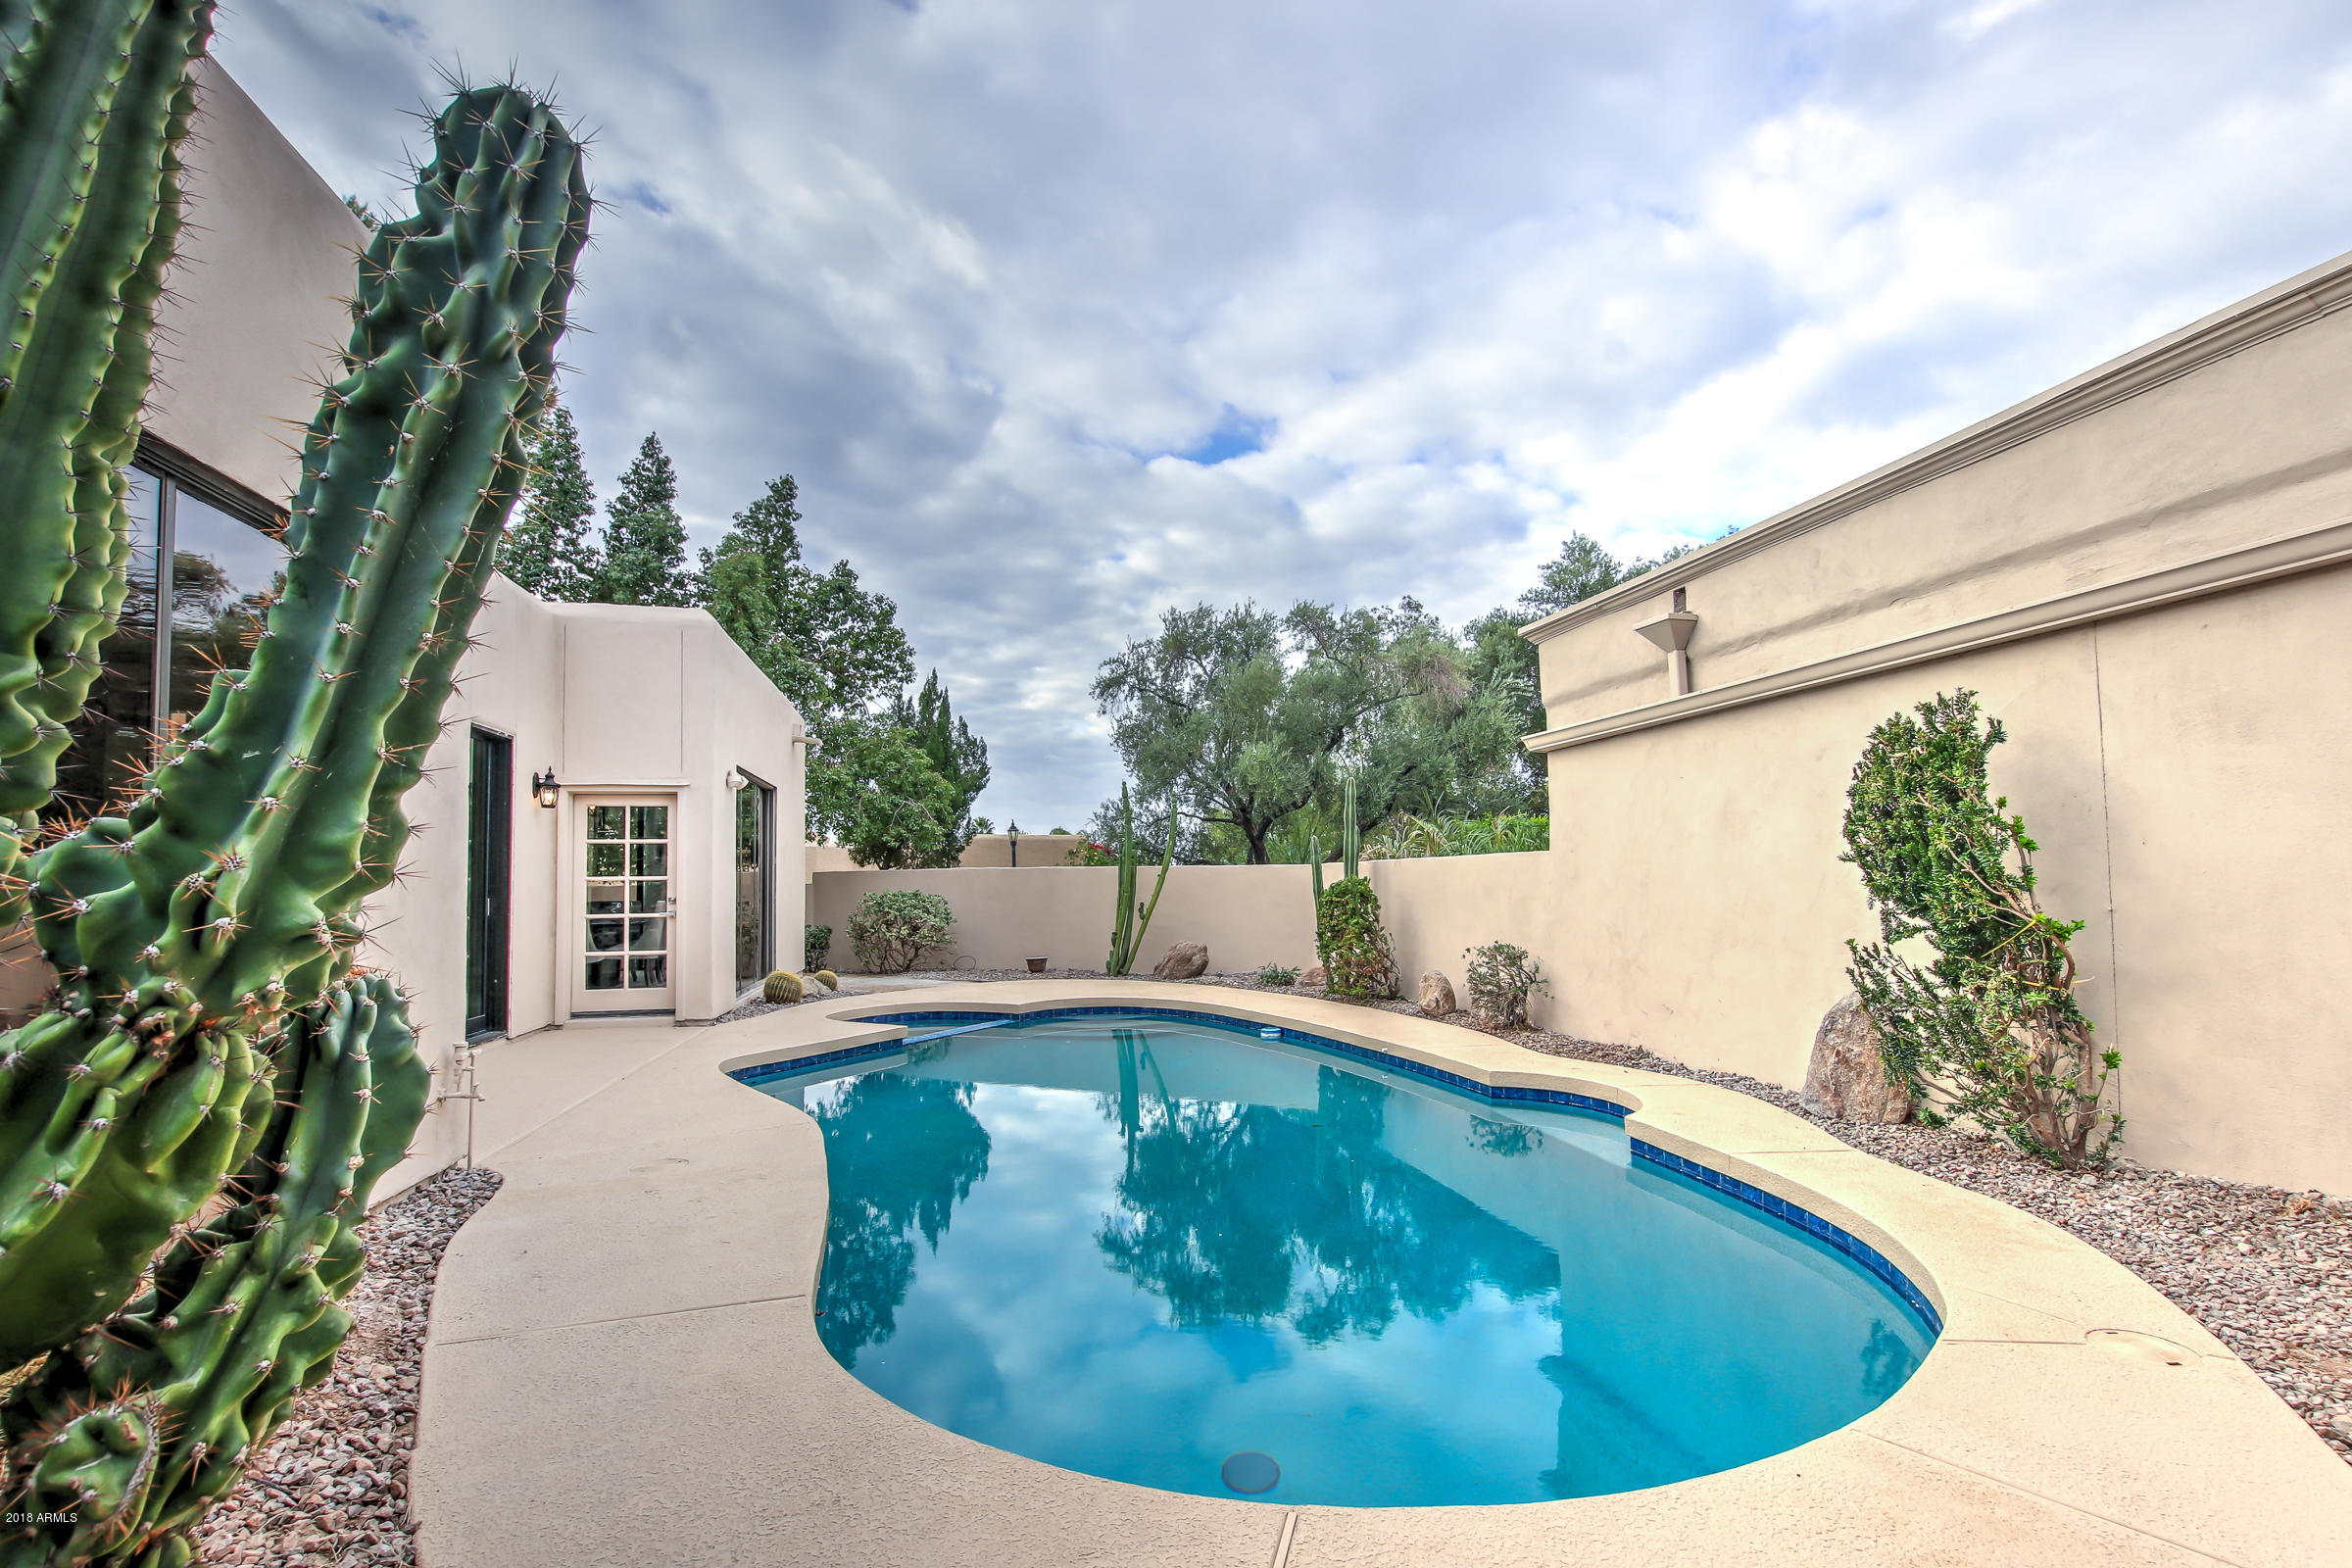 MLS 5725656 2737 E ARIZONA BILTMORE Circle Unit 29, Phoenix, AZ 85016 Phoenix AZ Three Bedroom